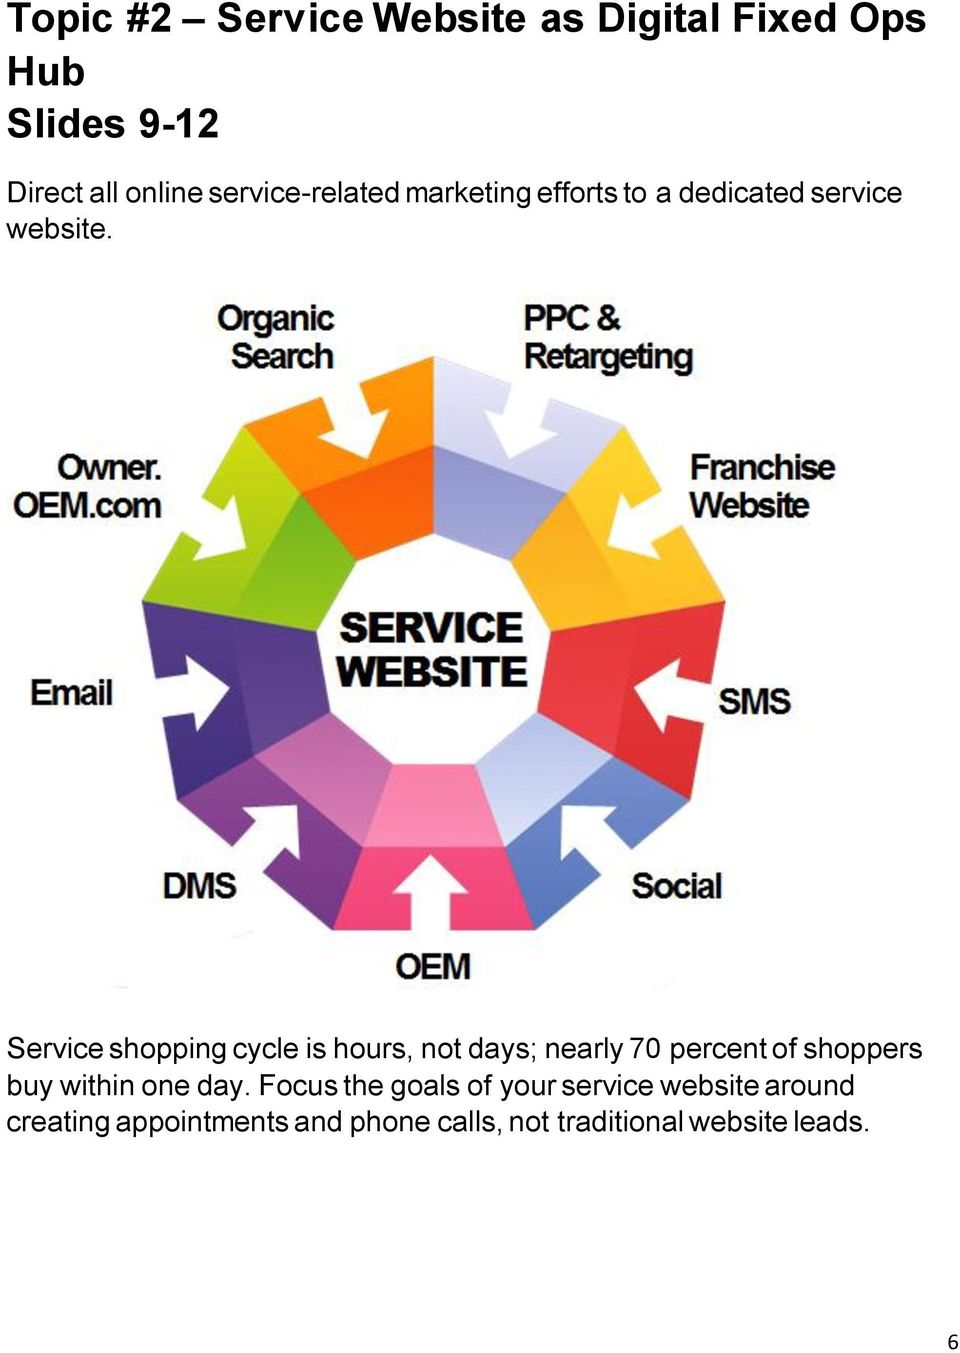 Service shopping cycle is hours, not days; nearly 70 percent of shoppers buy within one